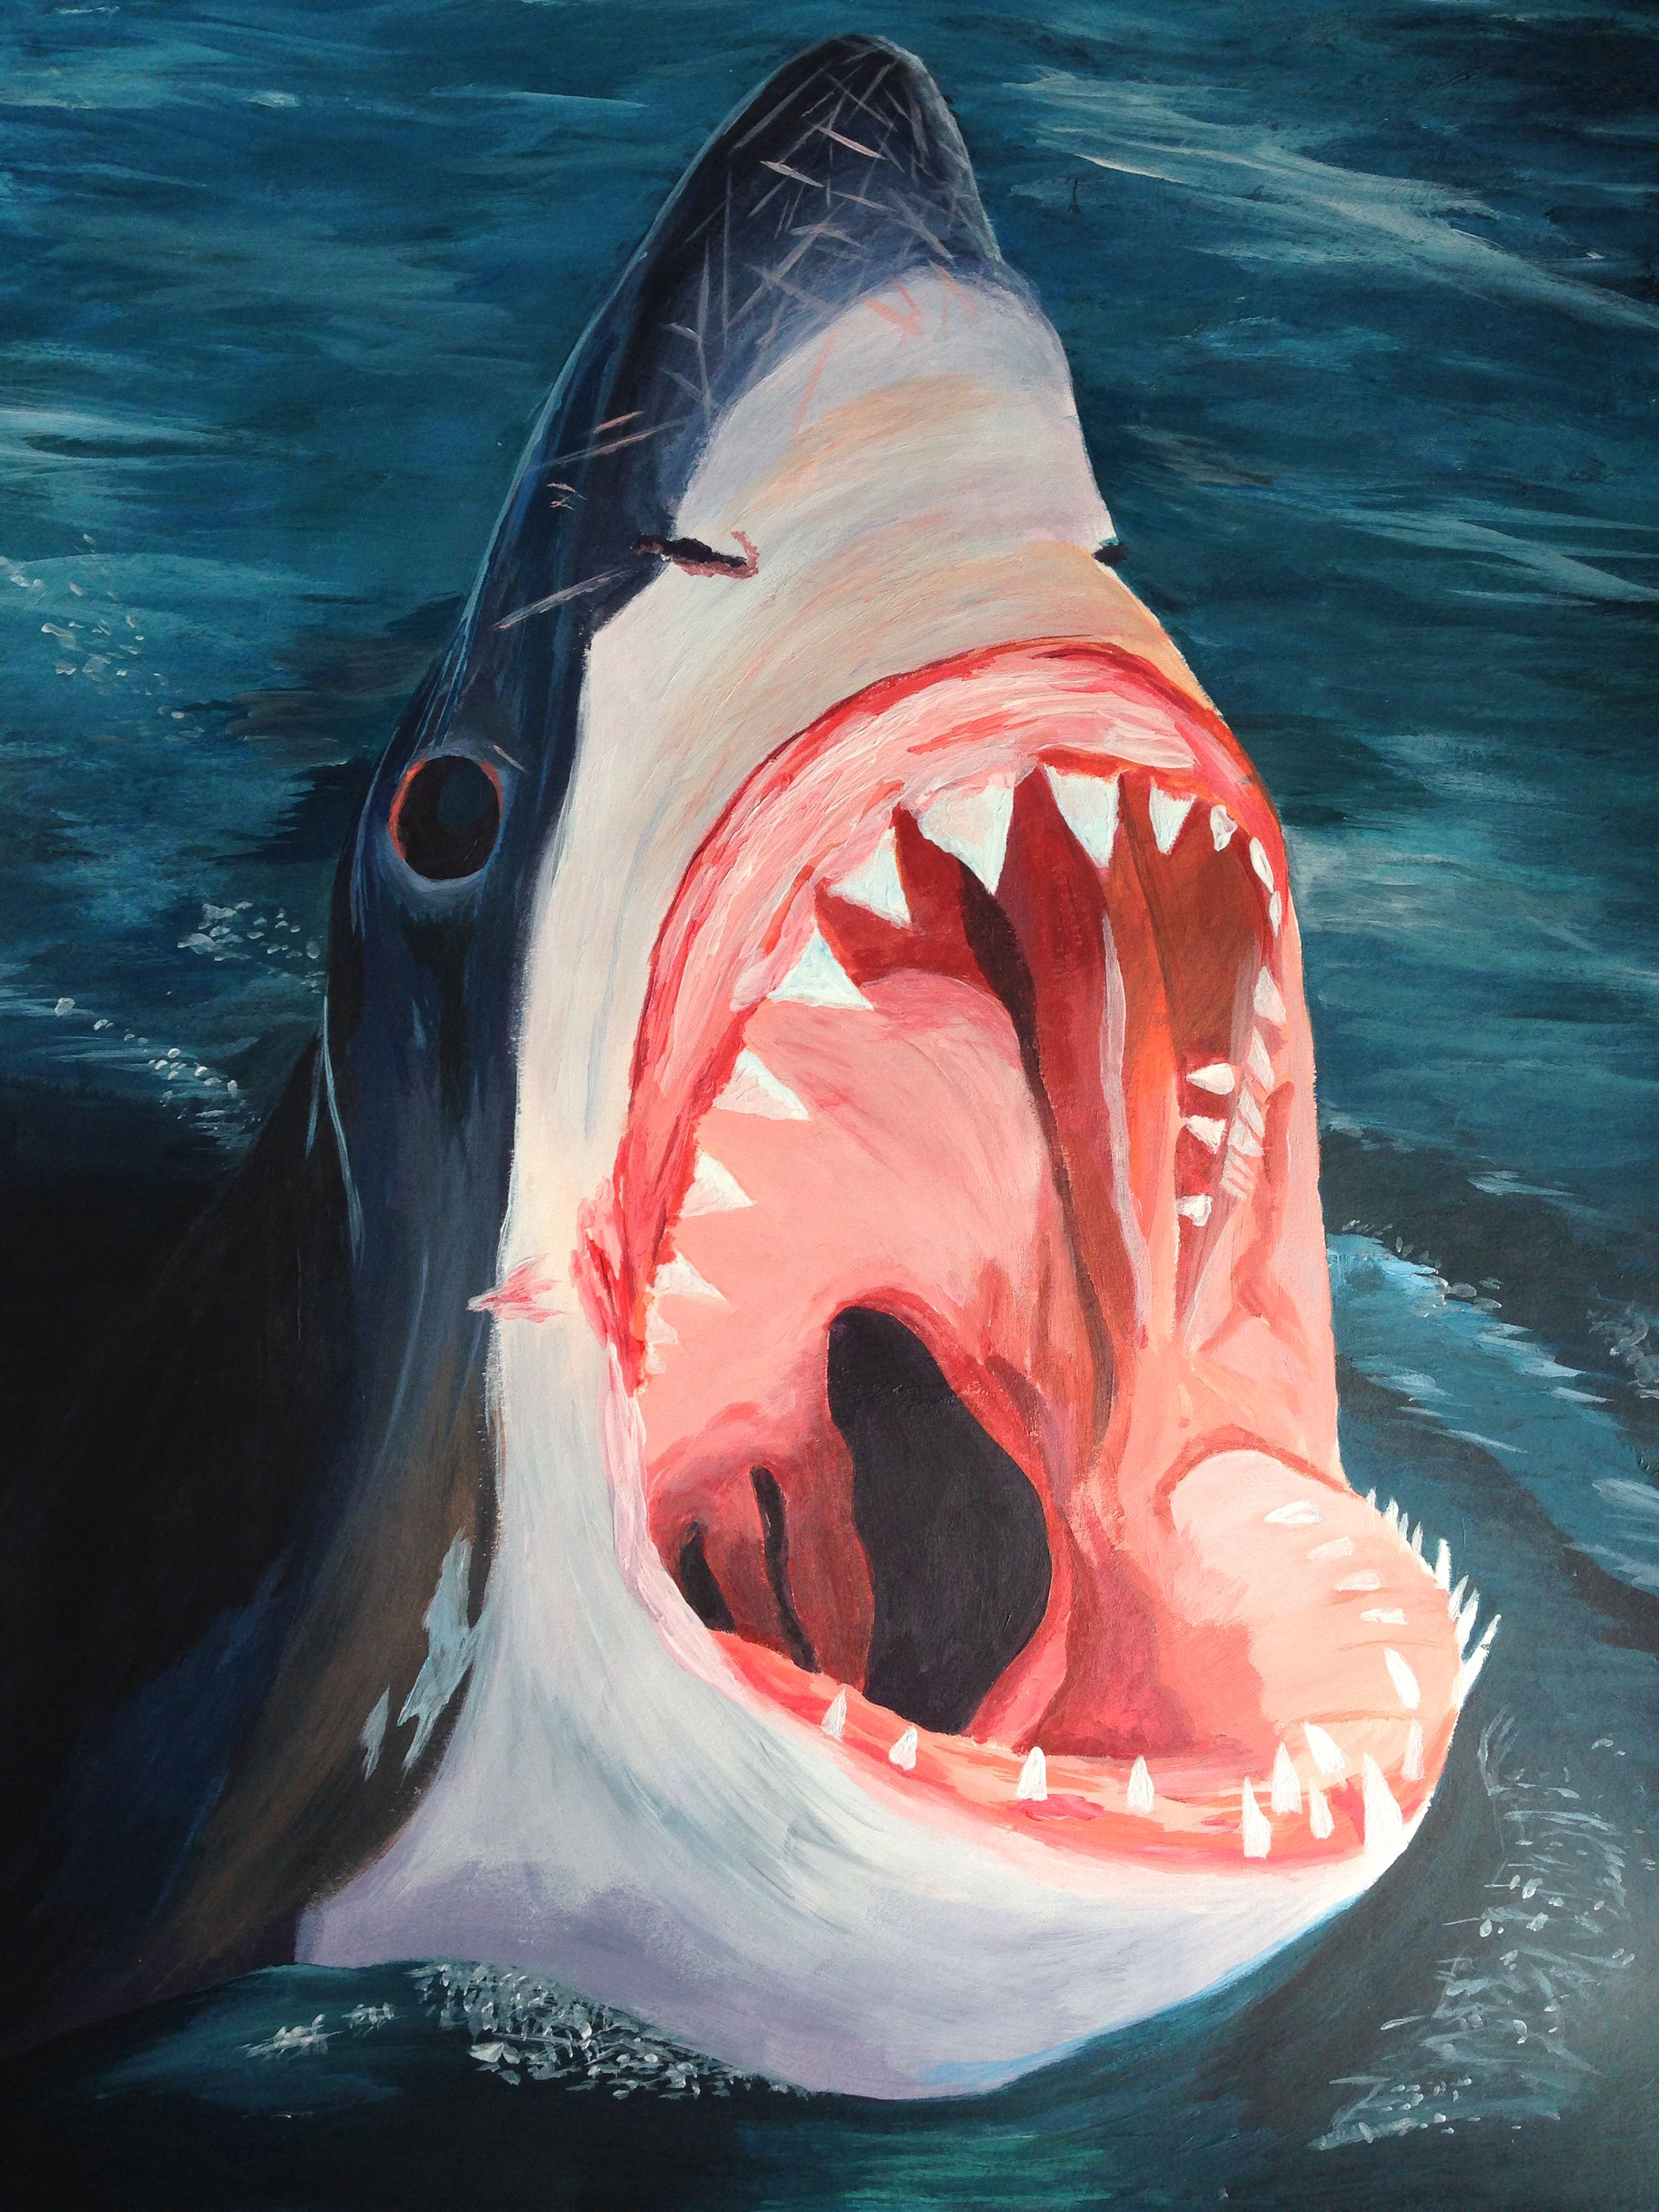 Design muse shark week - In Honor Of Shark Week I Should Do An Acrylic Shark Painting That D Be Something To Do On My Overnights At Least Lol